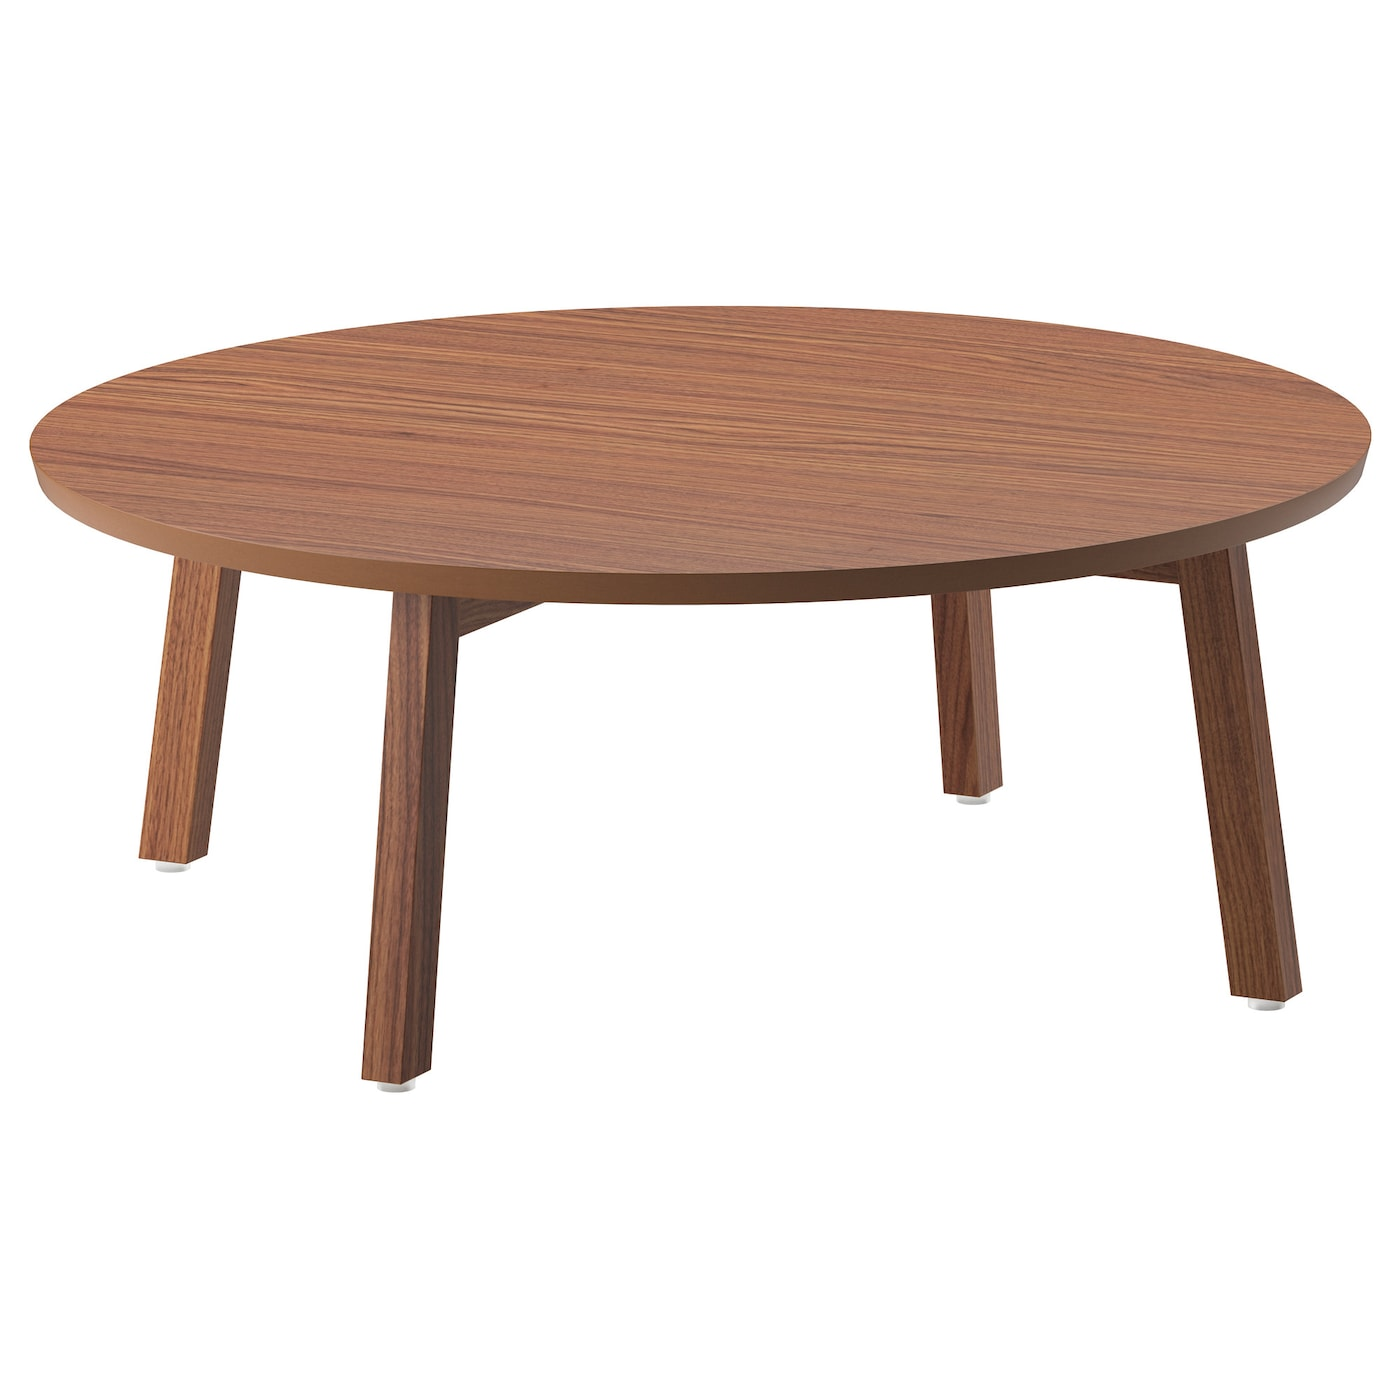 Stockholm coffee table walnut veneer 93 cm ikea for Base de table ikea